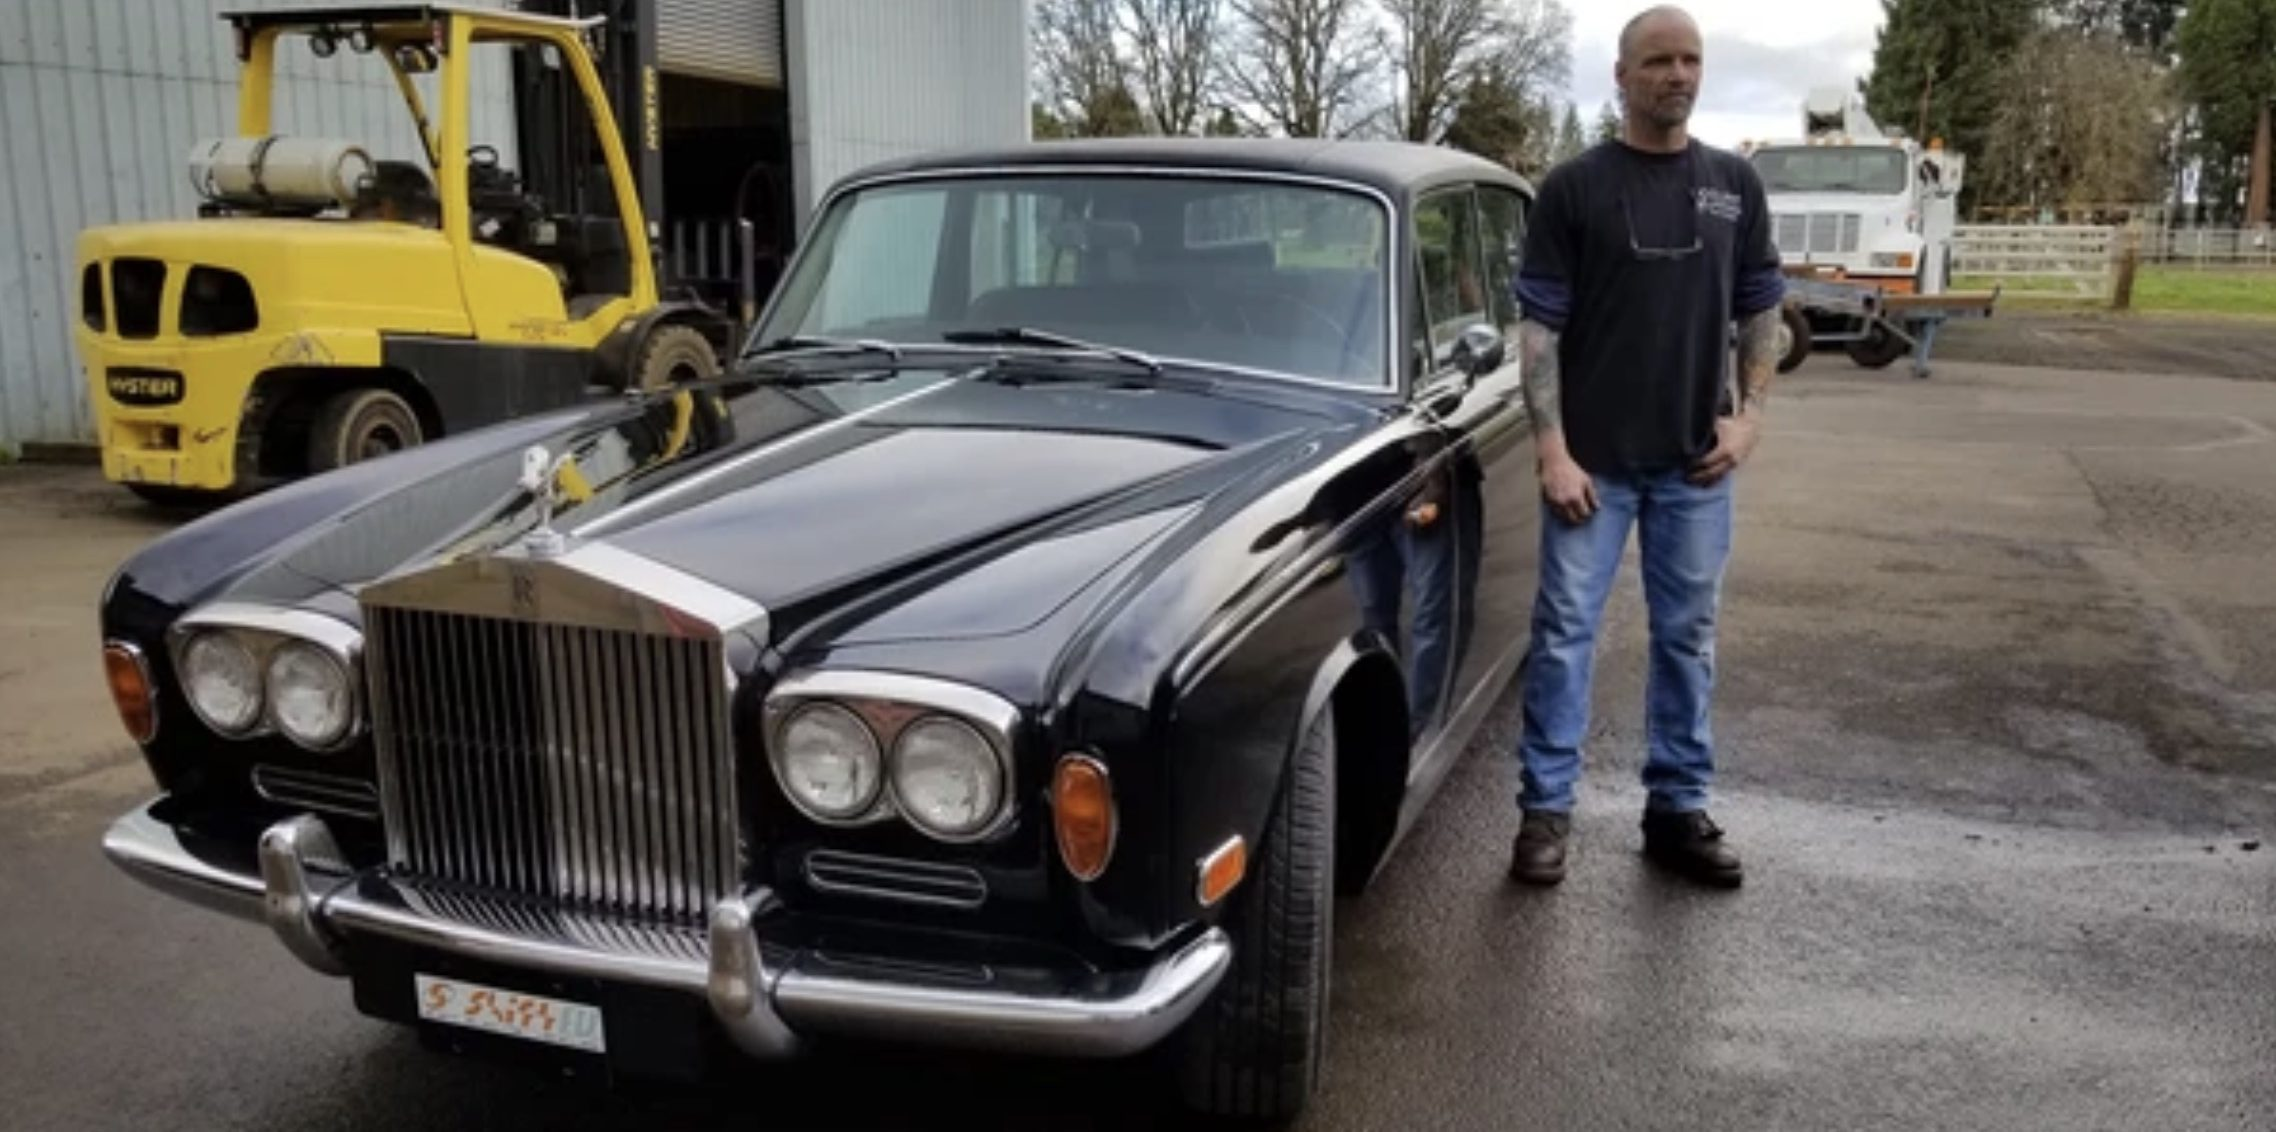 U.S.-based auto workshop Shift EV dedicates itself to electric conversions of classic cars. For today, let us watch them turn this 1970 Rolls-Royce Silver Shadow into a vintage-looking, yet modern and powerful luxury sedan.